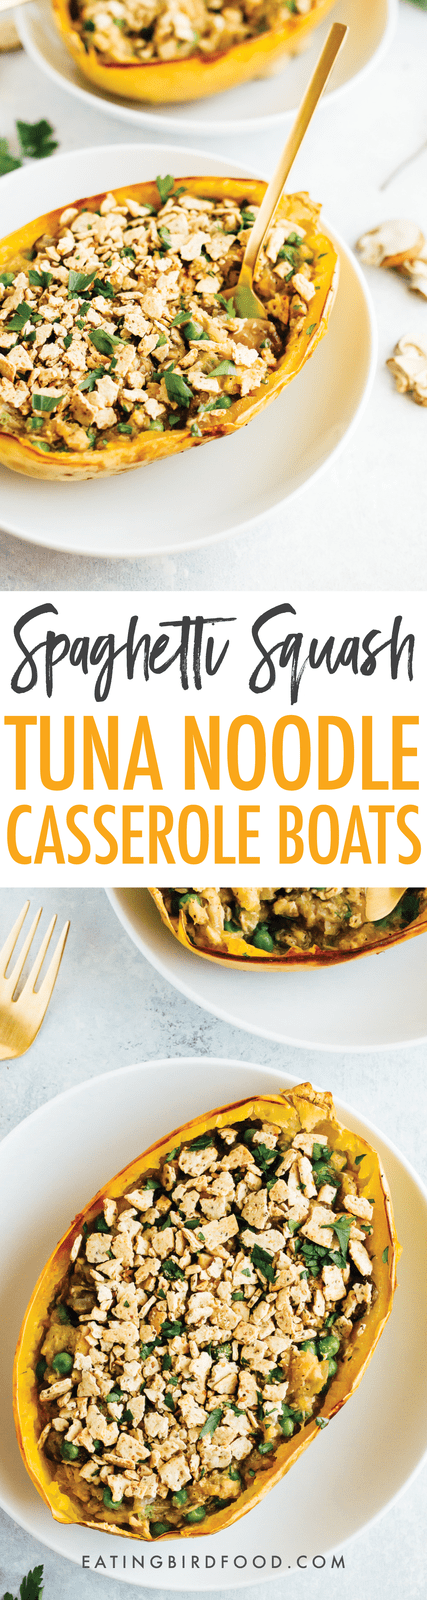 A healthy spin on a comfort food classic, these spaghetti squash tuna noodle casserole boats are filled with loads of creamy noodle goodness. Gluten-free, dairy-free, low-carb and paleo!